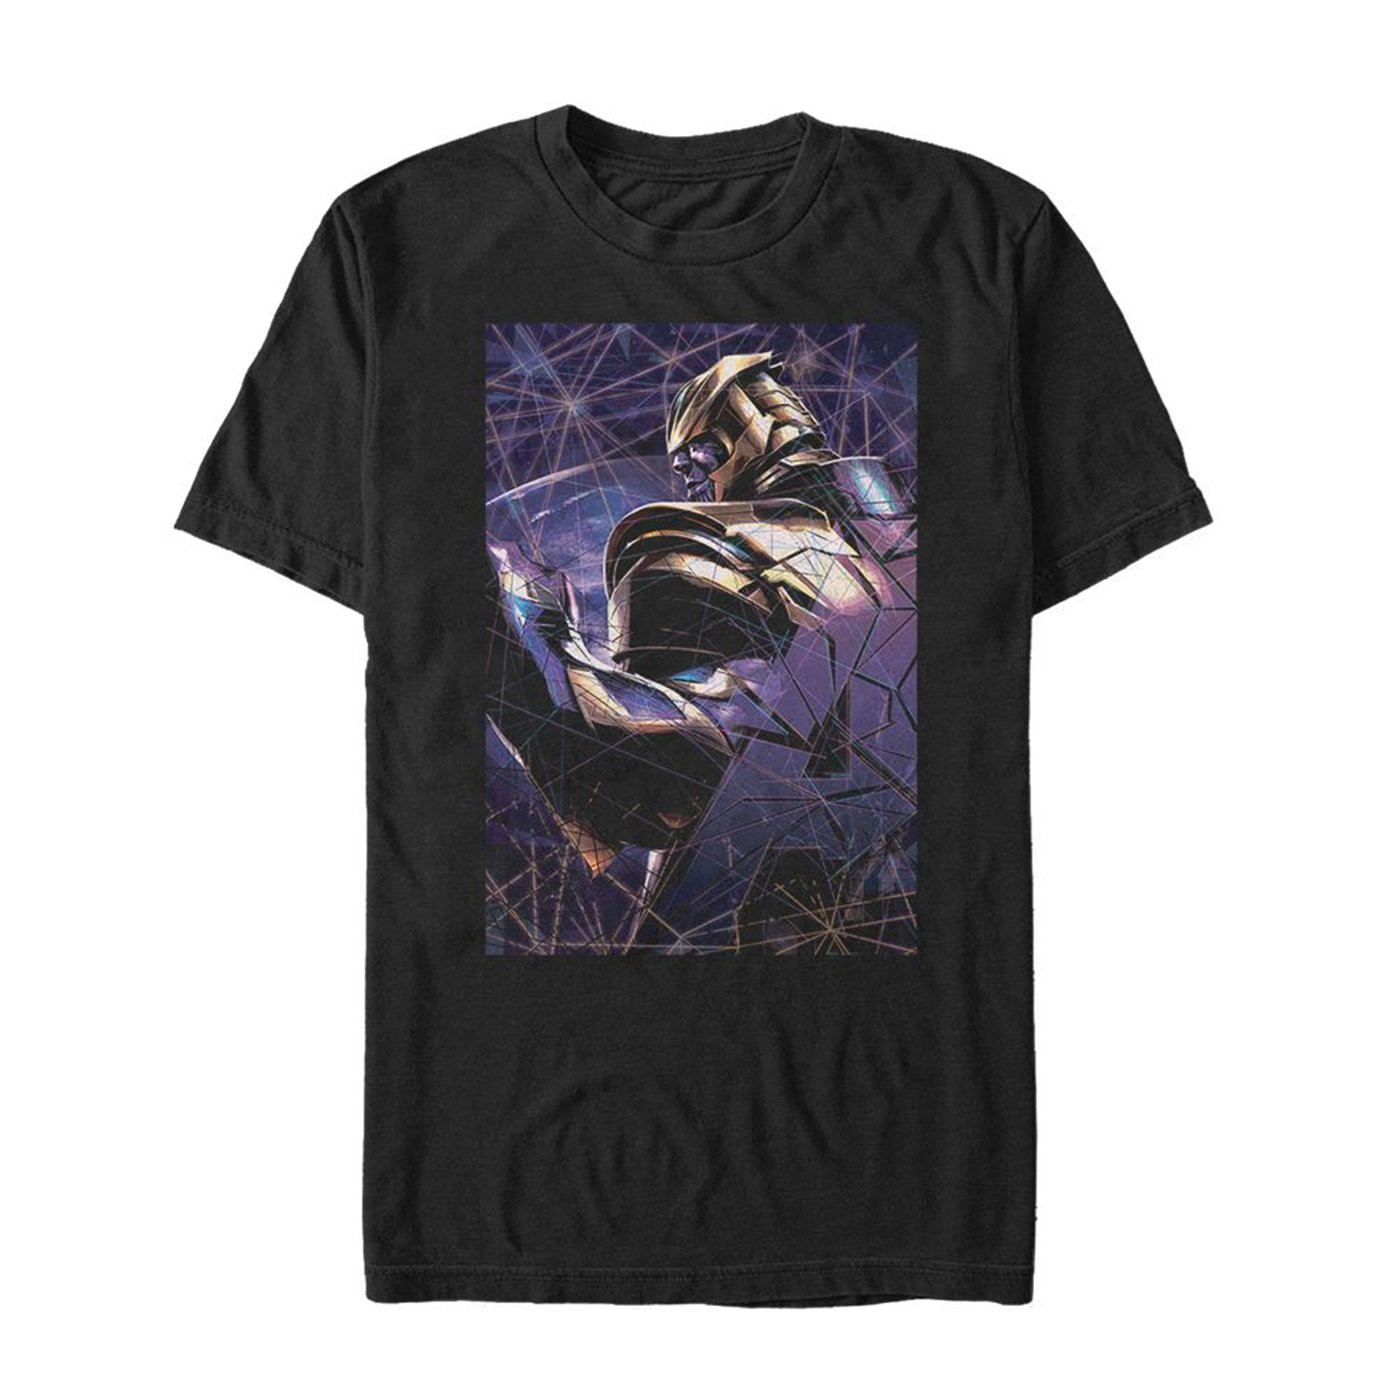 Avengers Endgame Thanos Breaks Men's T-Shirt